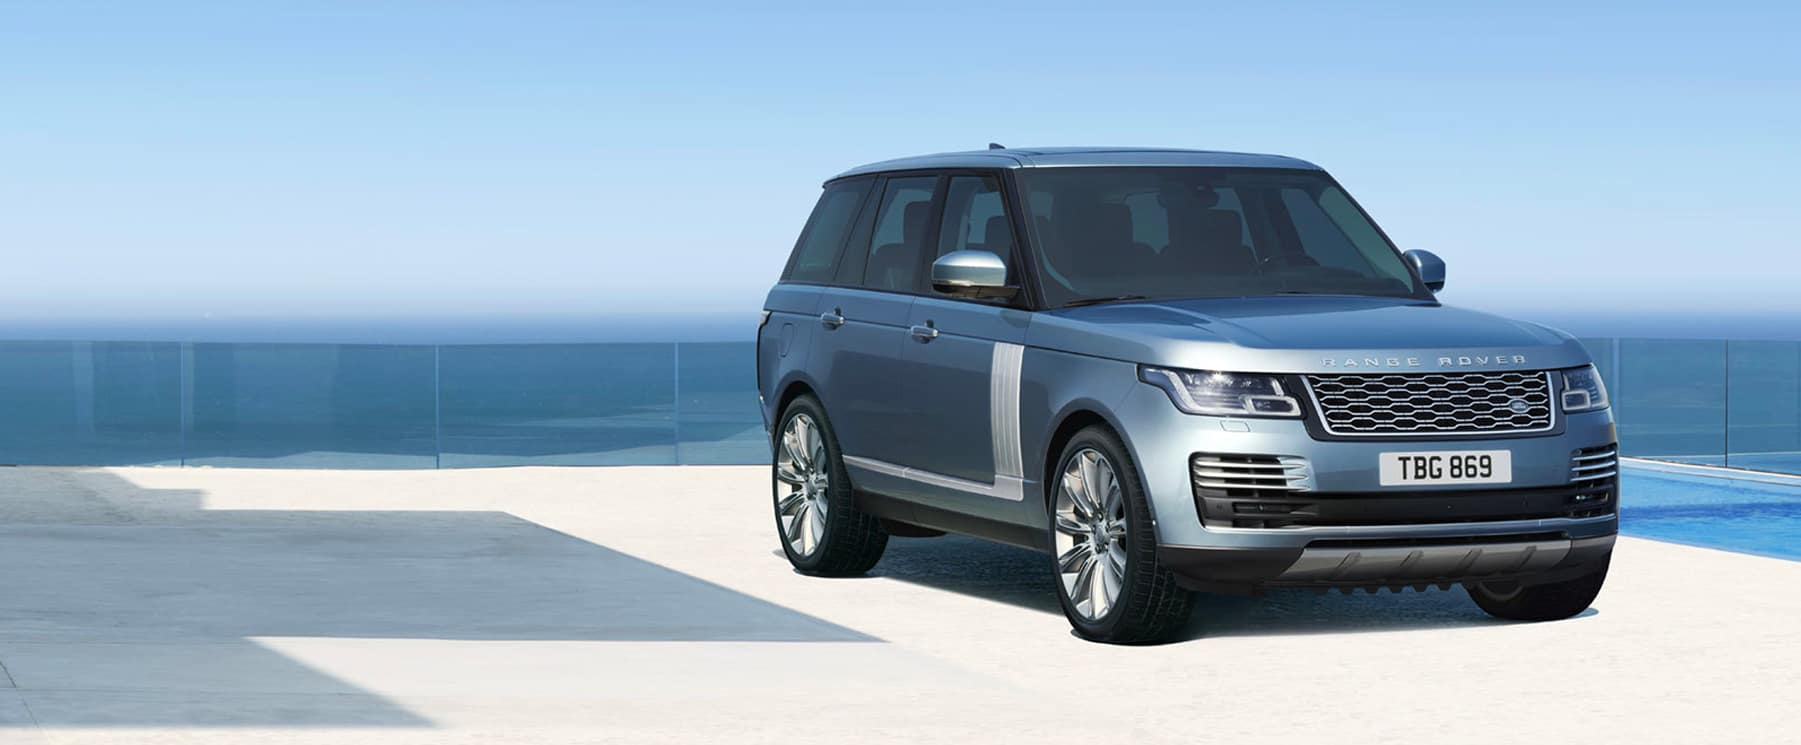 2019 Range Rover Overview